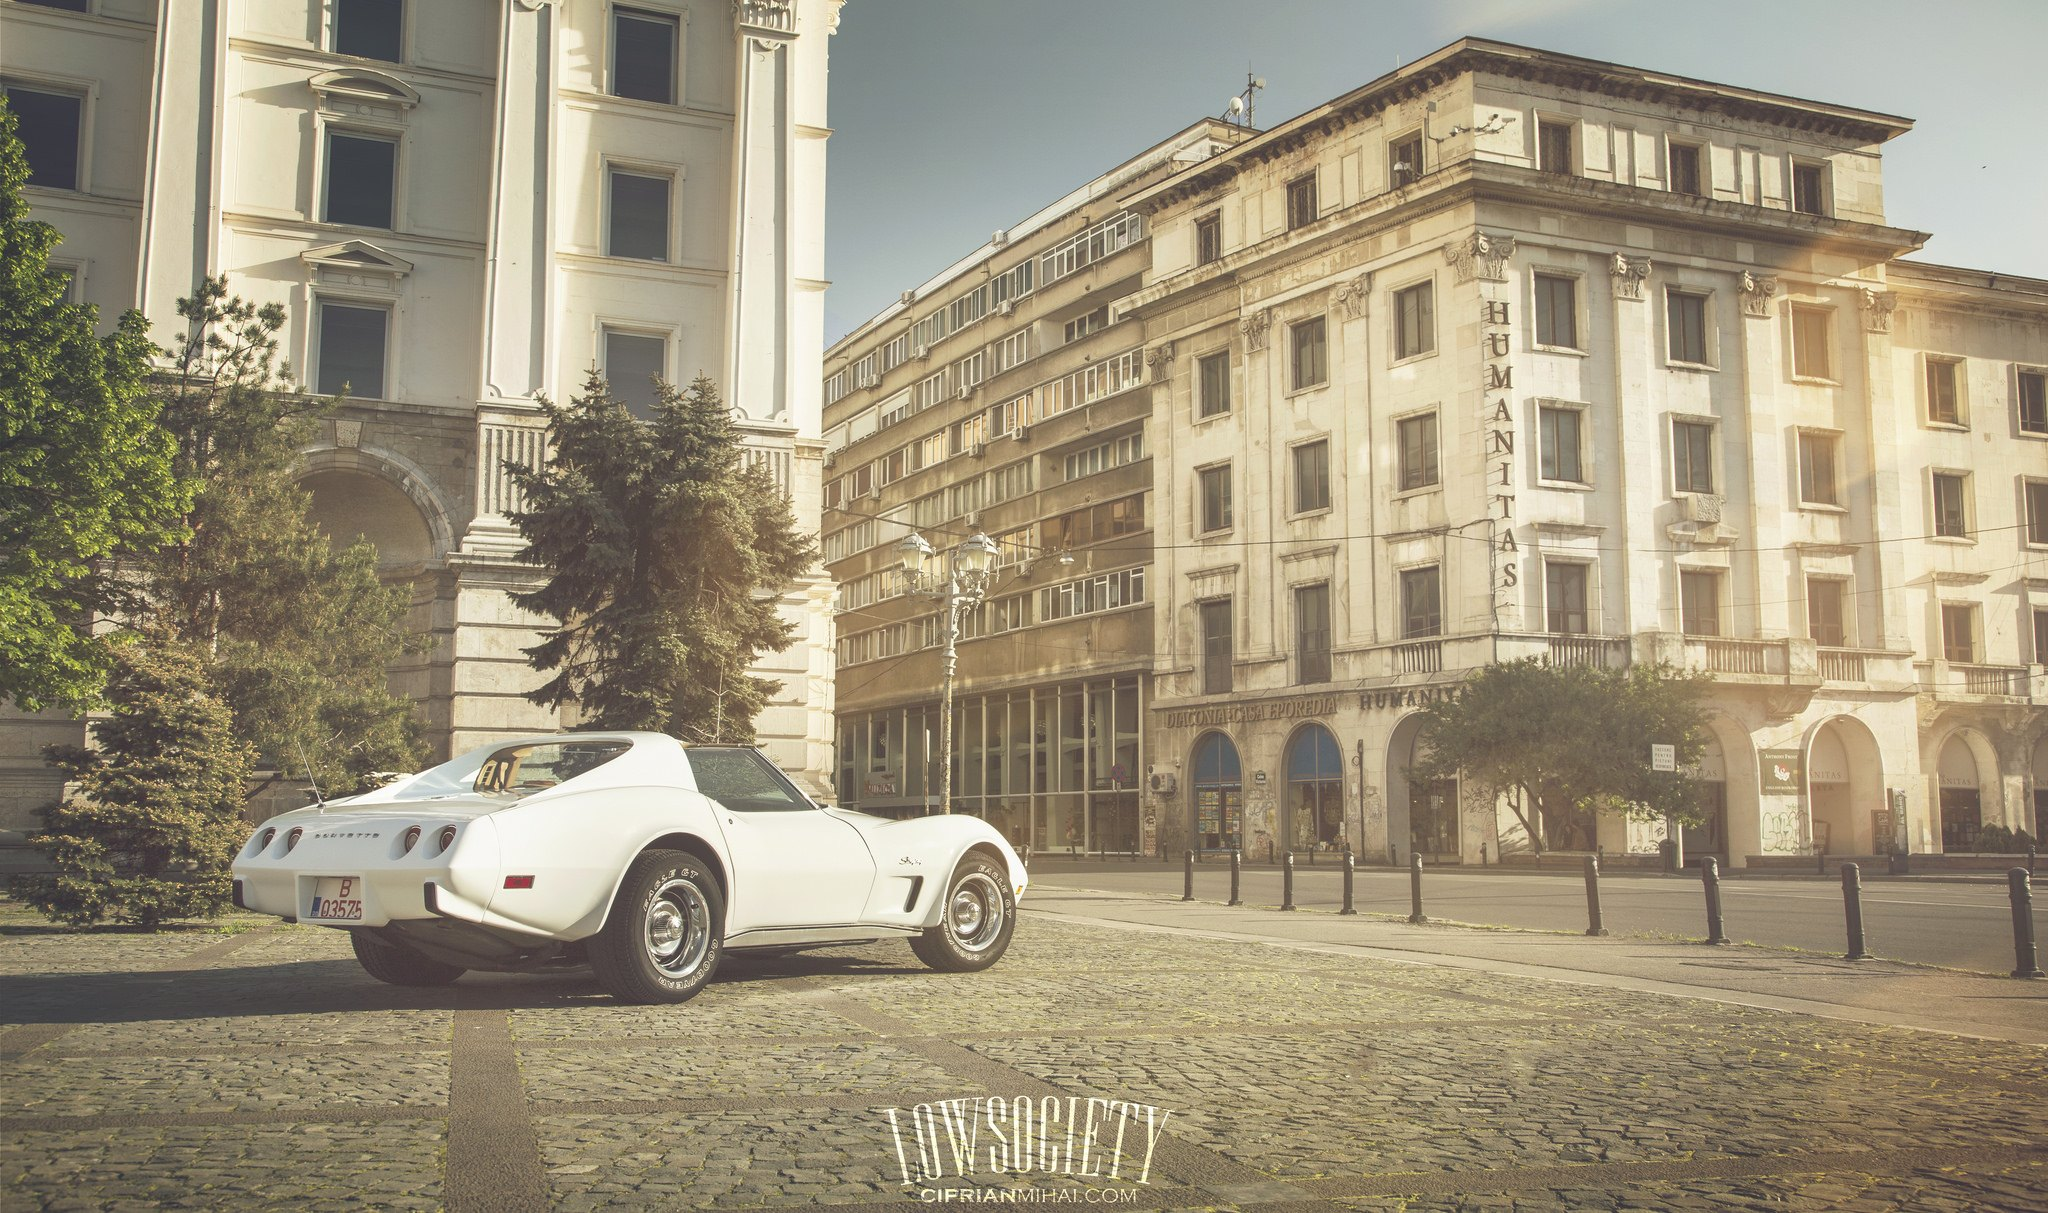 White Chevy Corvette on Goodyear Tires  - Photo by Ciprian Mihai